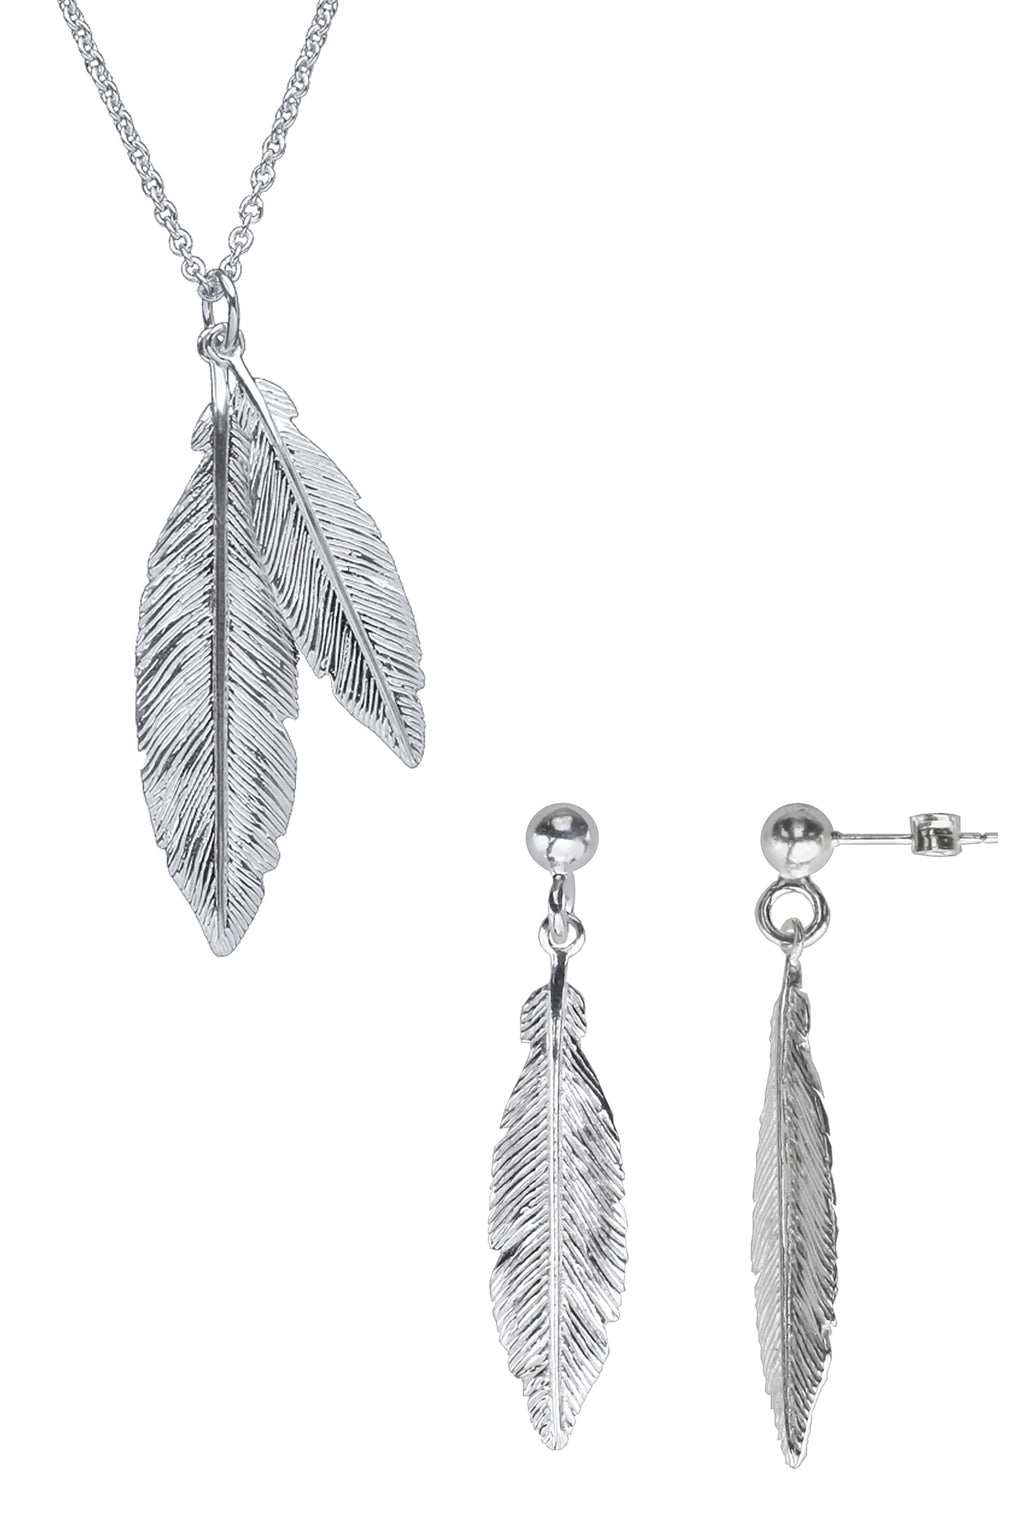 Silver Feathers Set